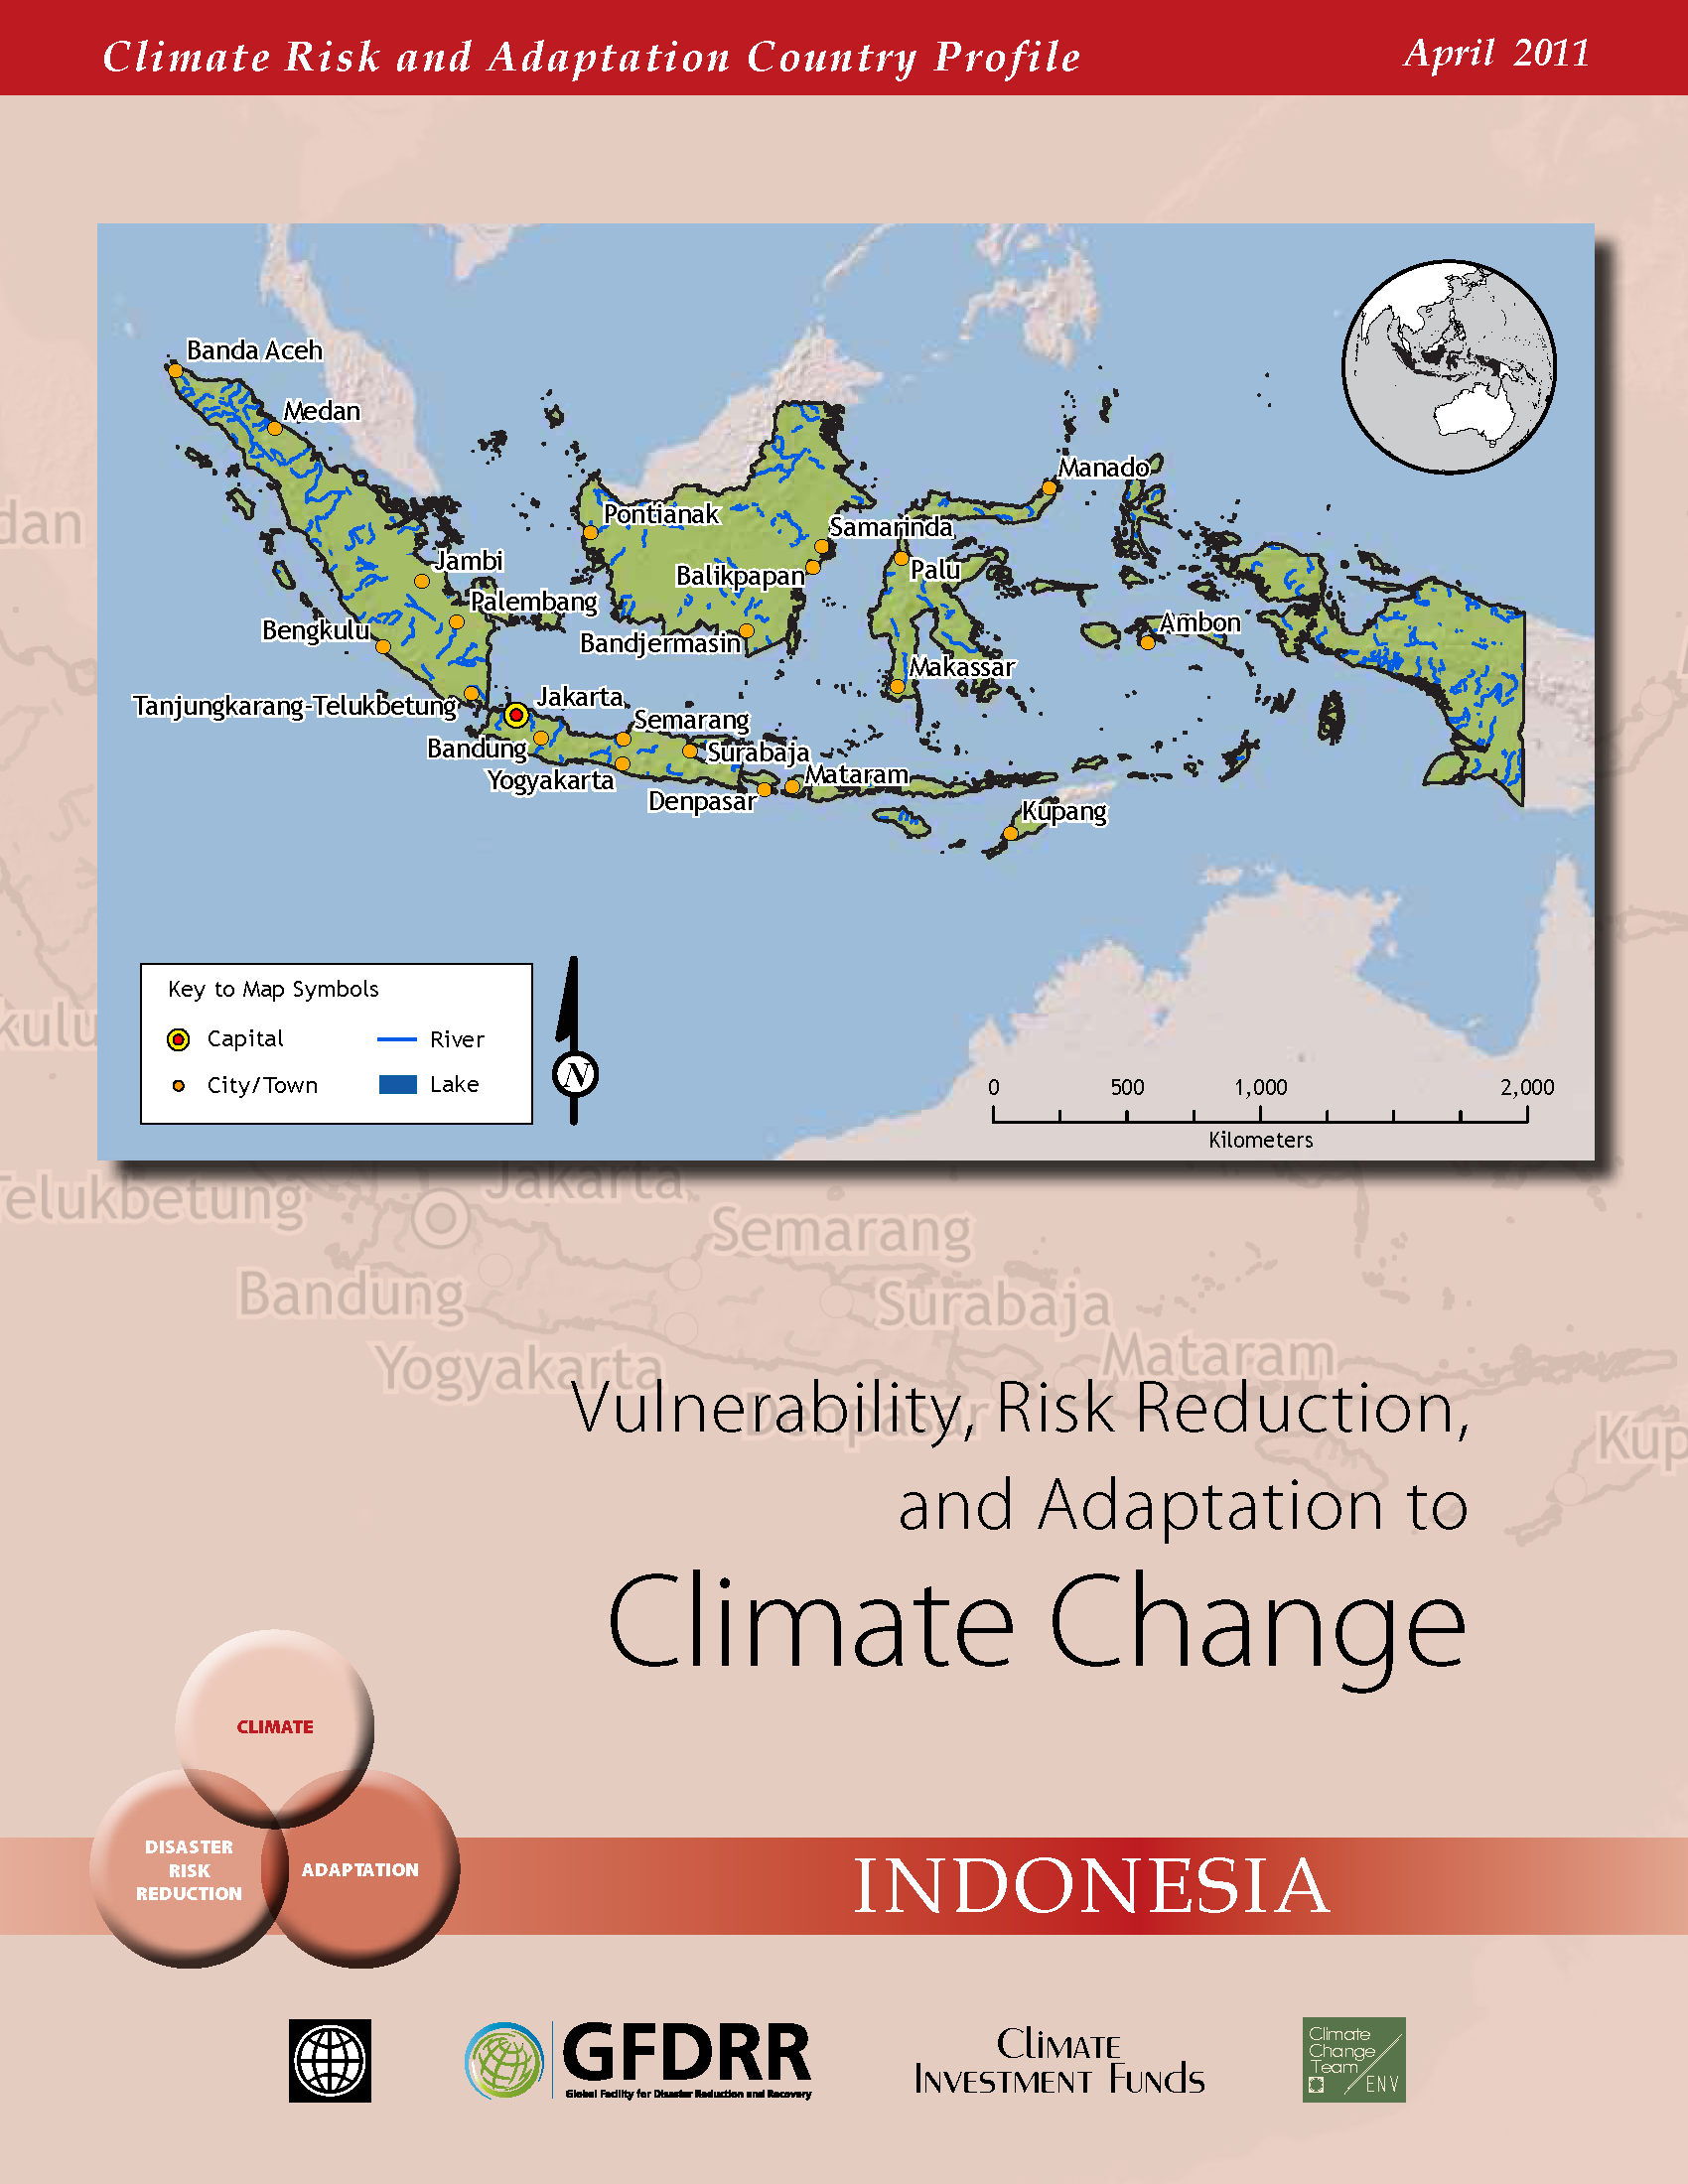 Climate Risk and Adaptation Country Profile: Indonesia